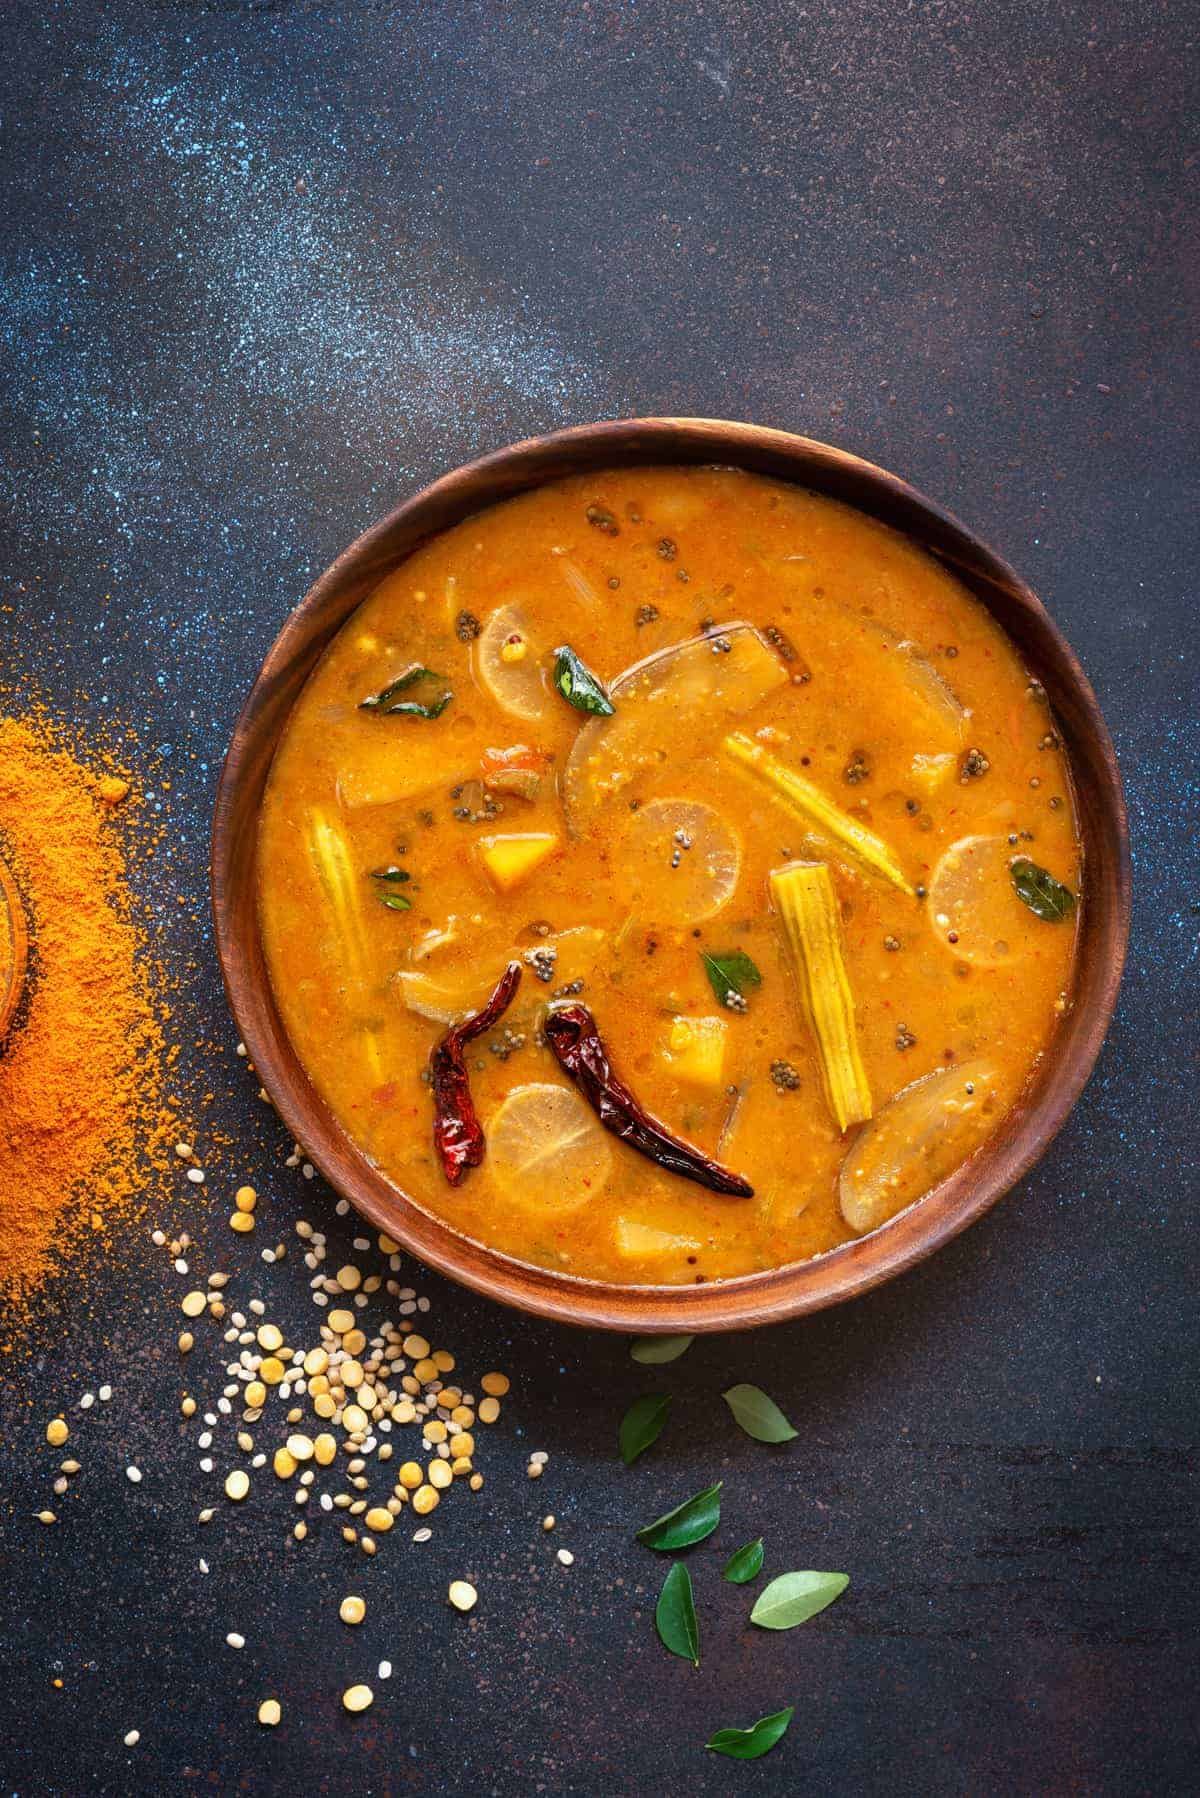 Vegetable Sambar dal in a wooden bowl, some sambar powder and spices spread around.